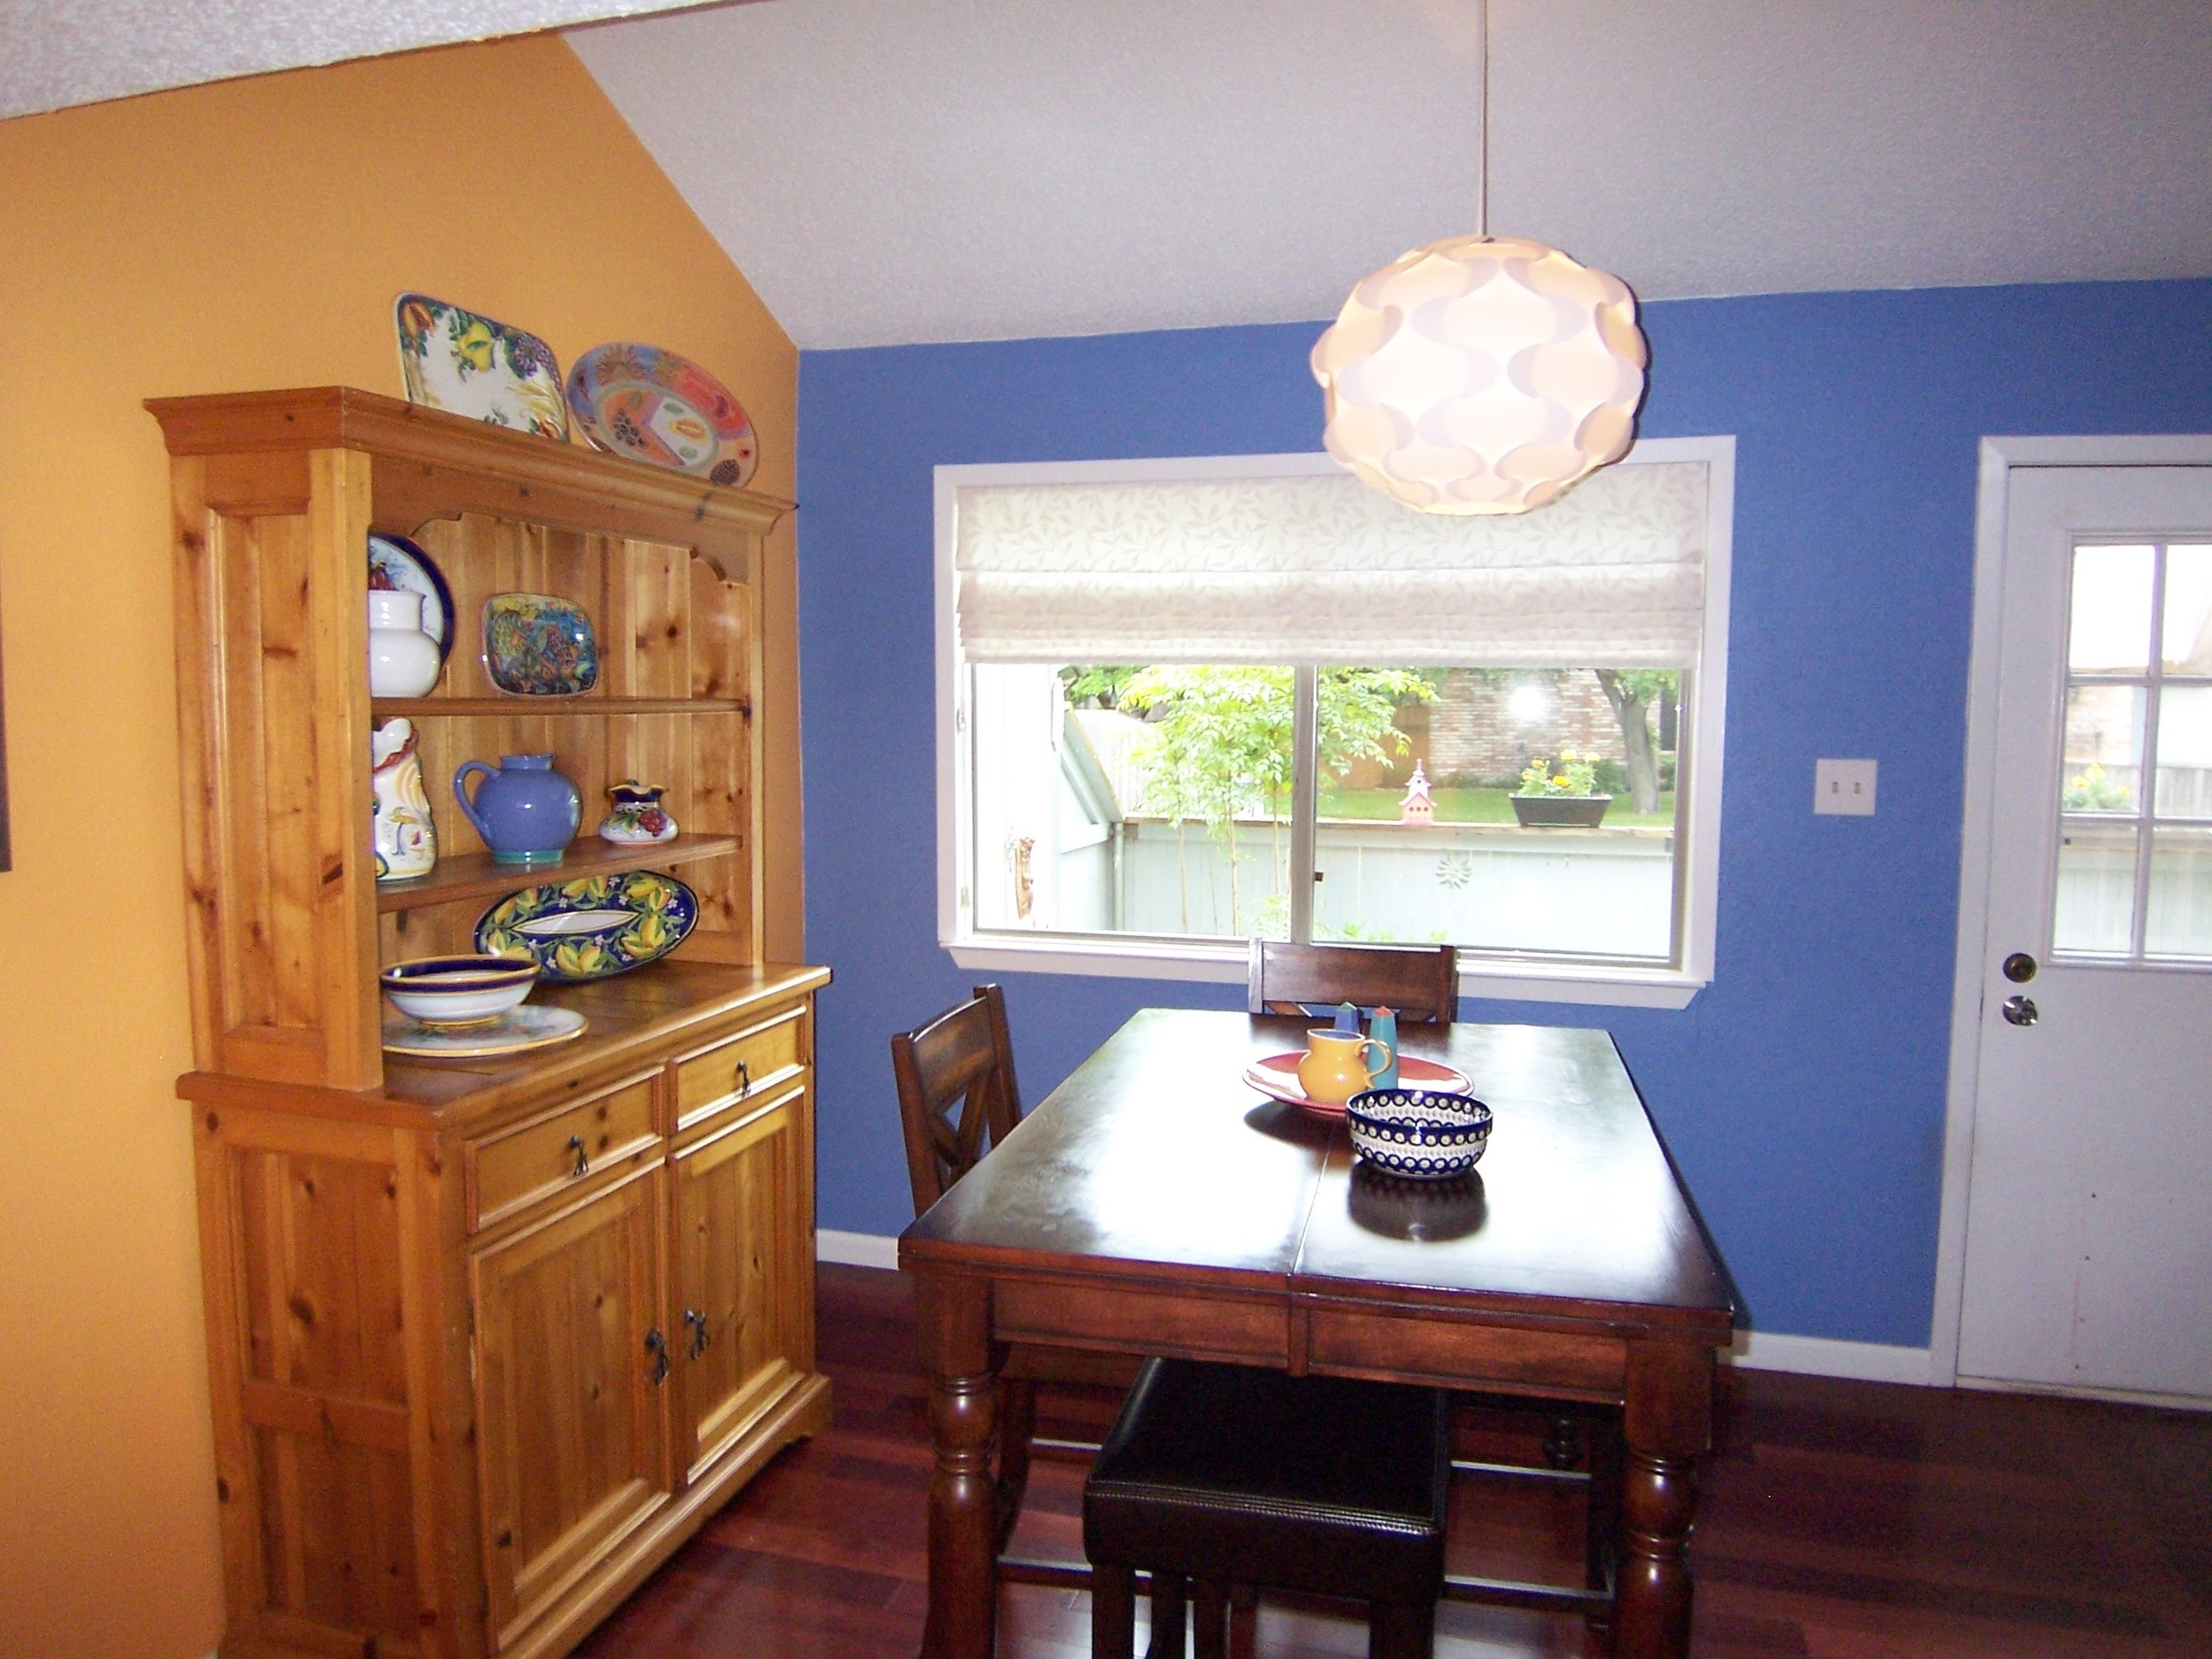 Dining+Area+Decor+and+Paint+Color.jpg